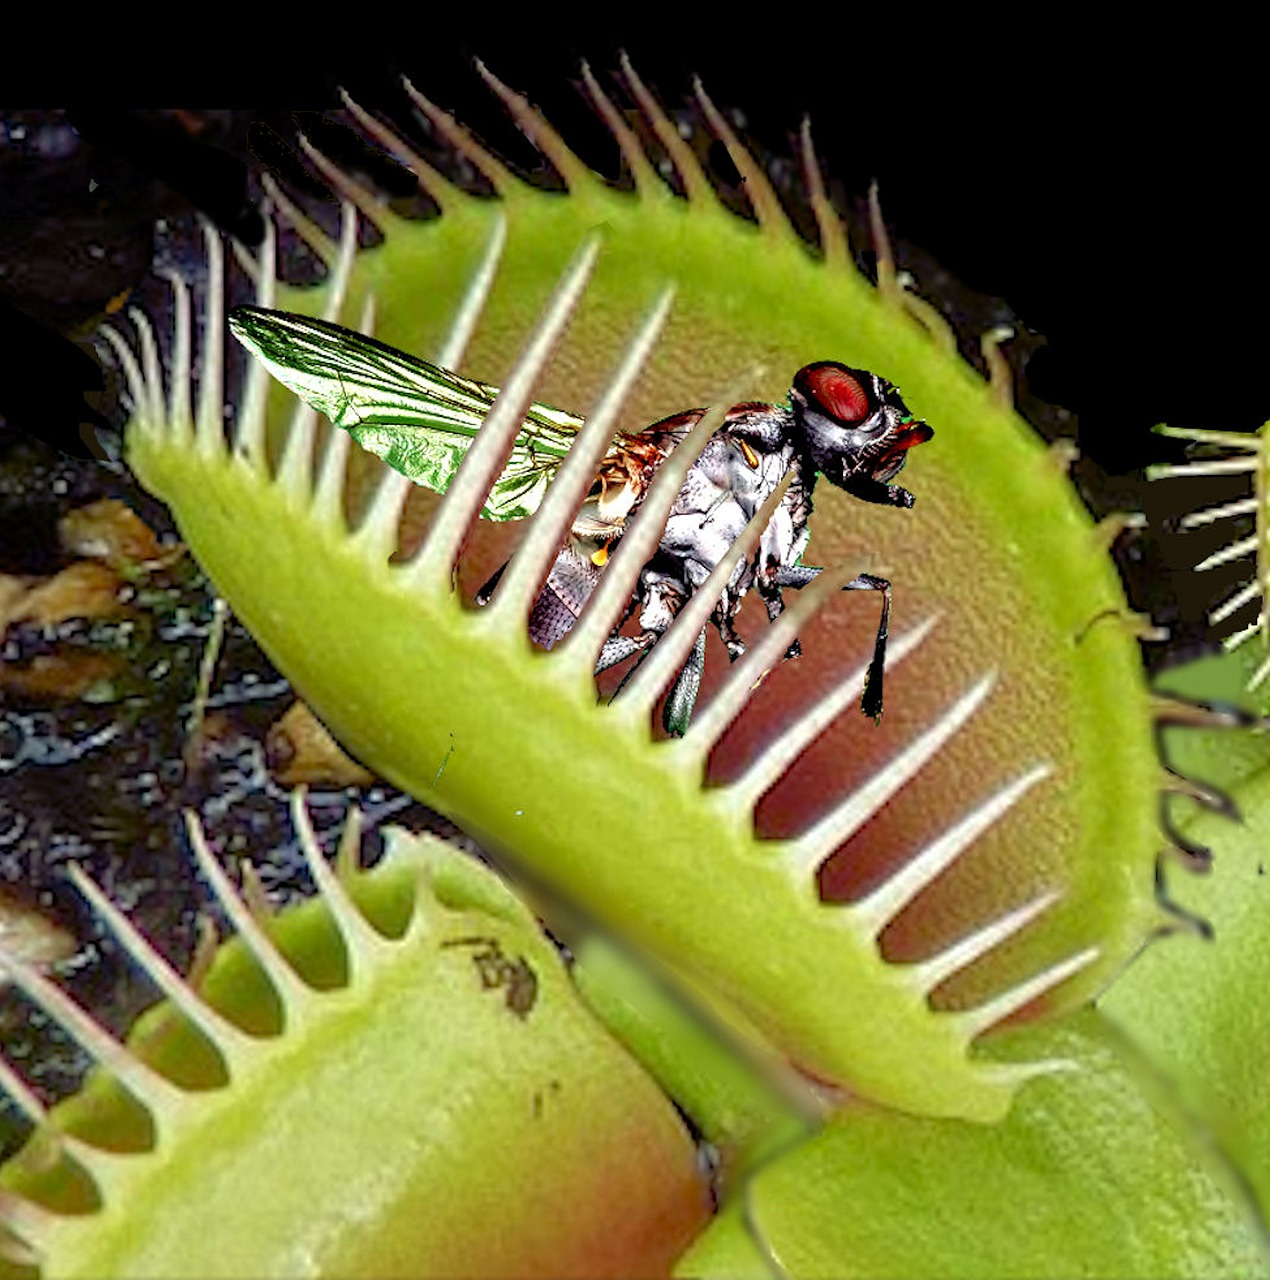 venus flytrap facts for kids fun facts about the venus fly trap we live a lot. Black Bedroom Furniture Sets. Home Design Ideas